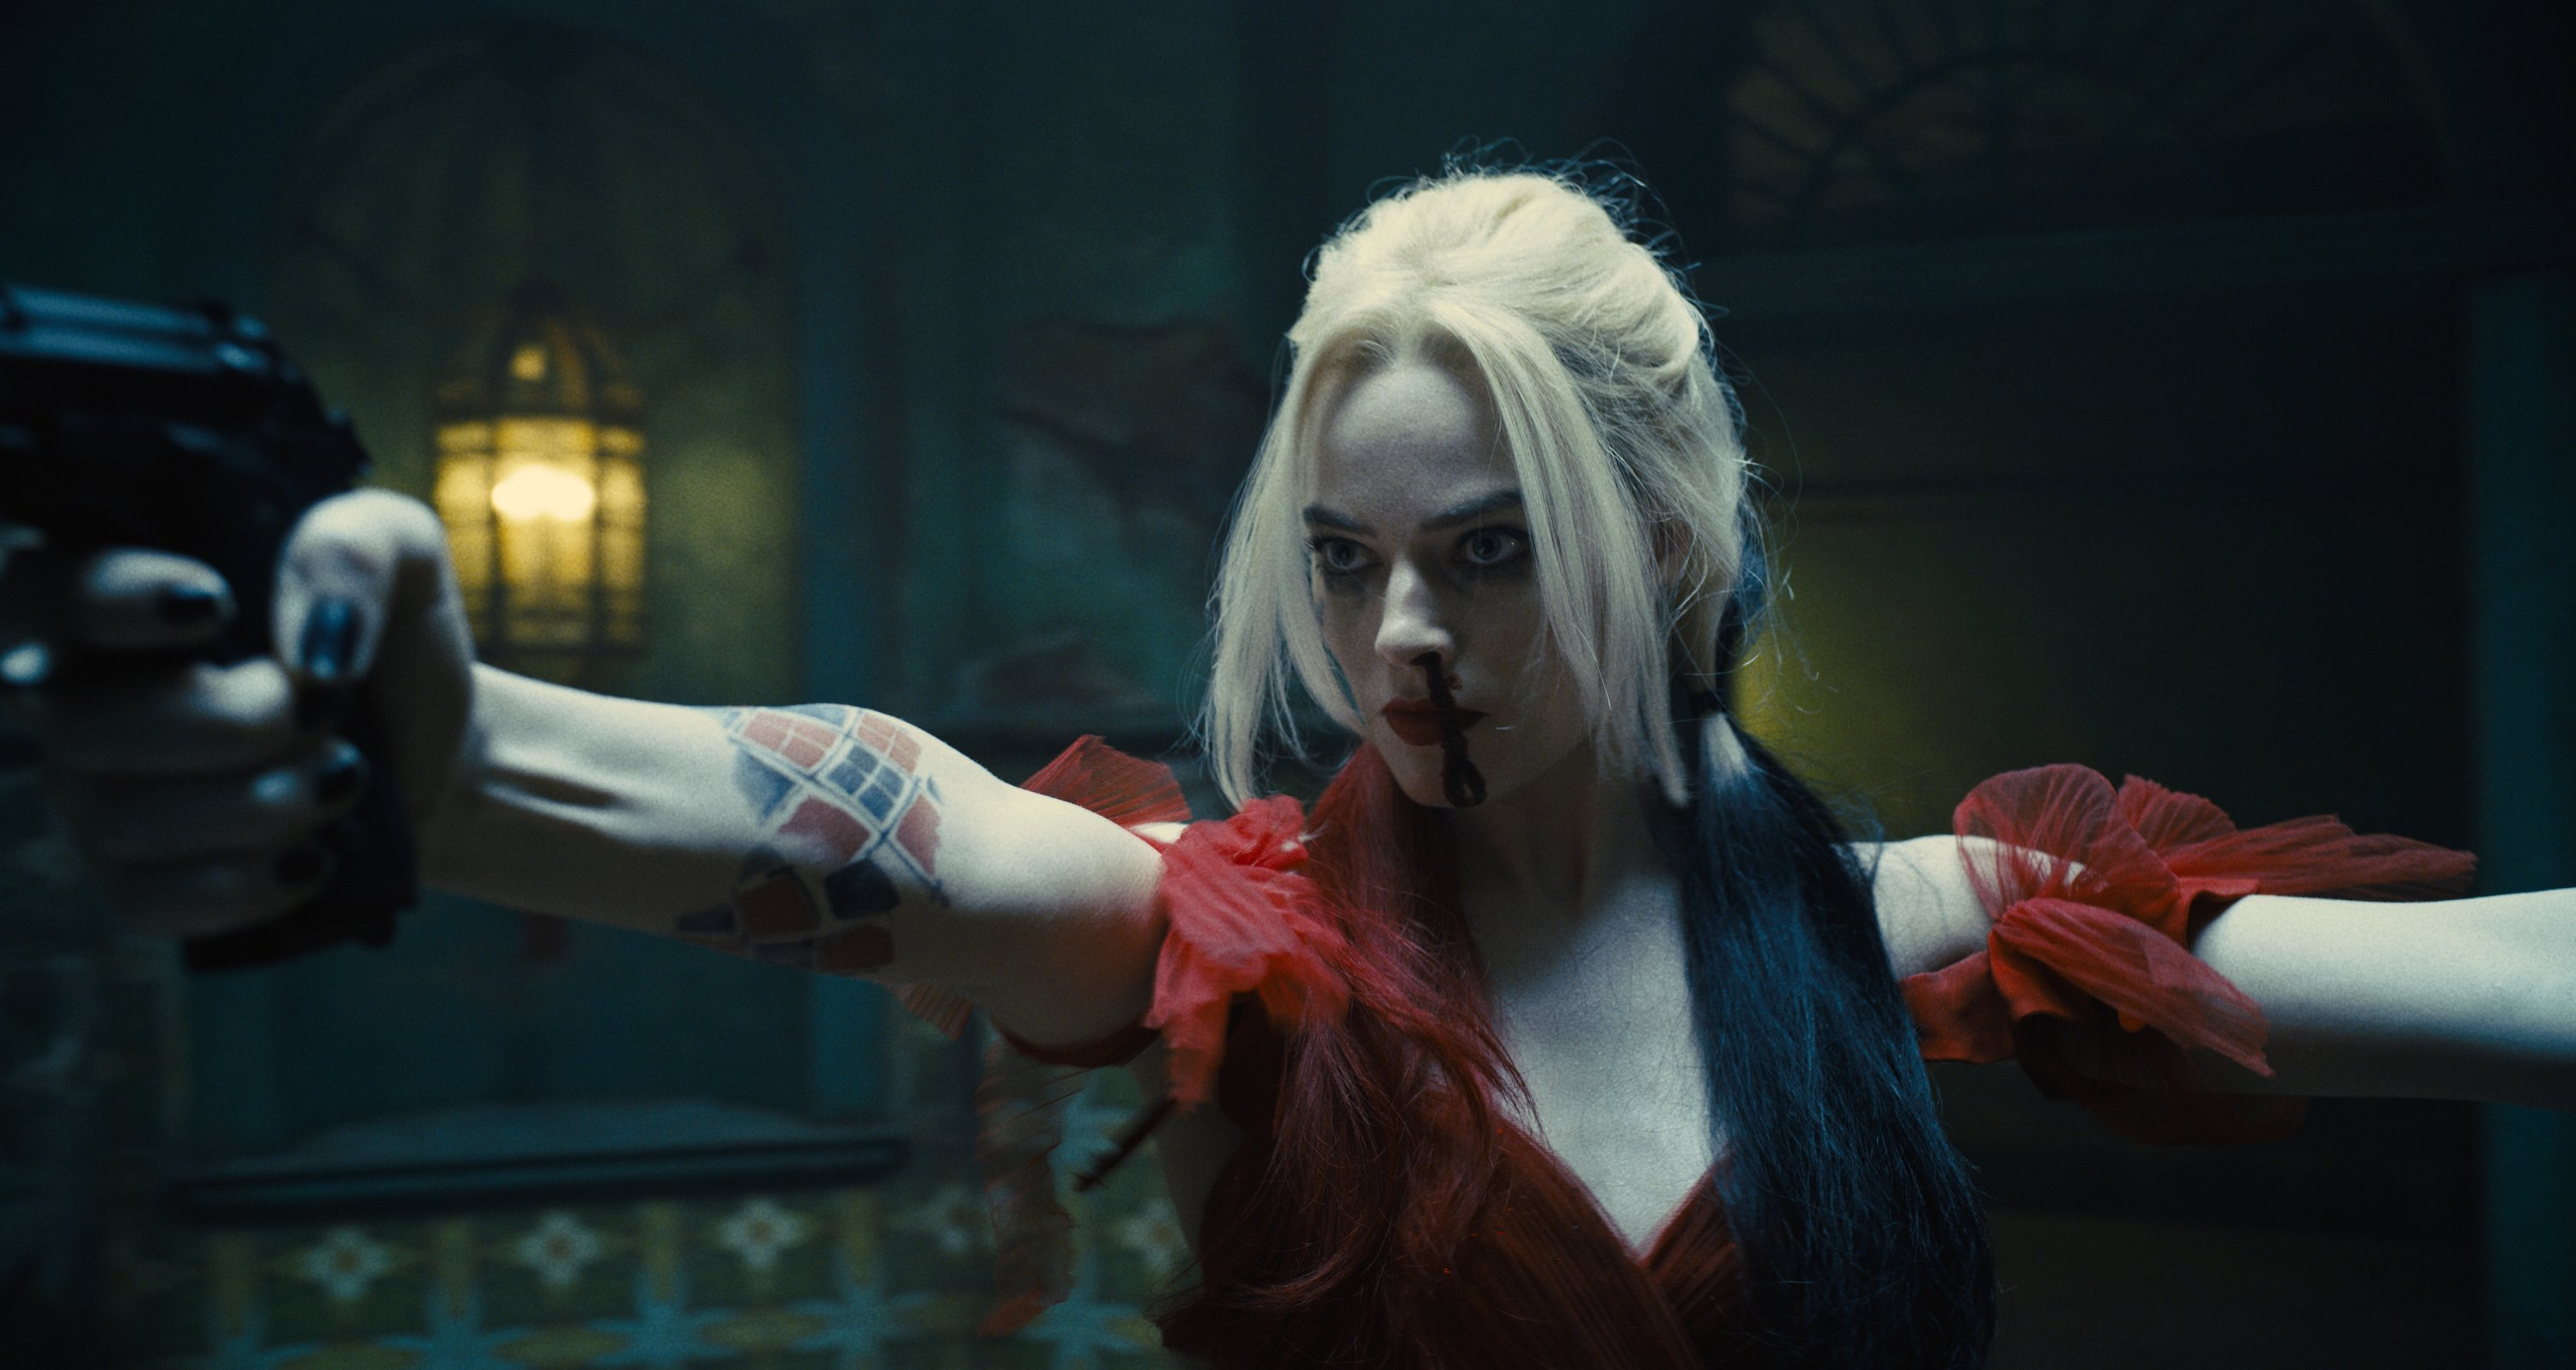 This image provided by Warner Bros. Pictures shows Margot Robbie in a scene from 'The Suicide Squad.' (Warner Bros. Pictures via AP)